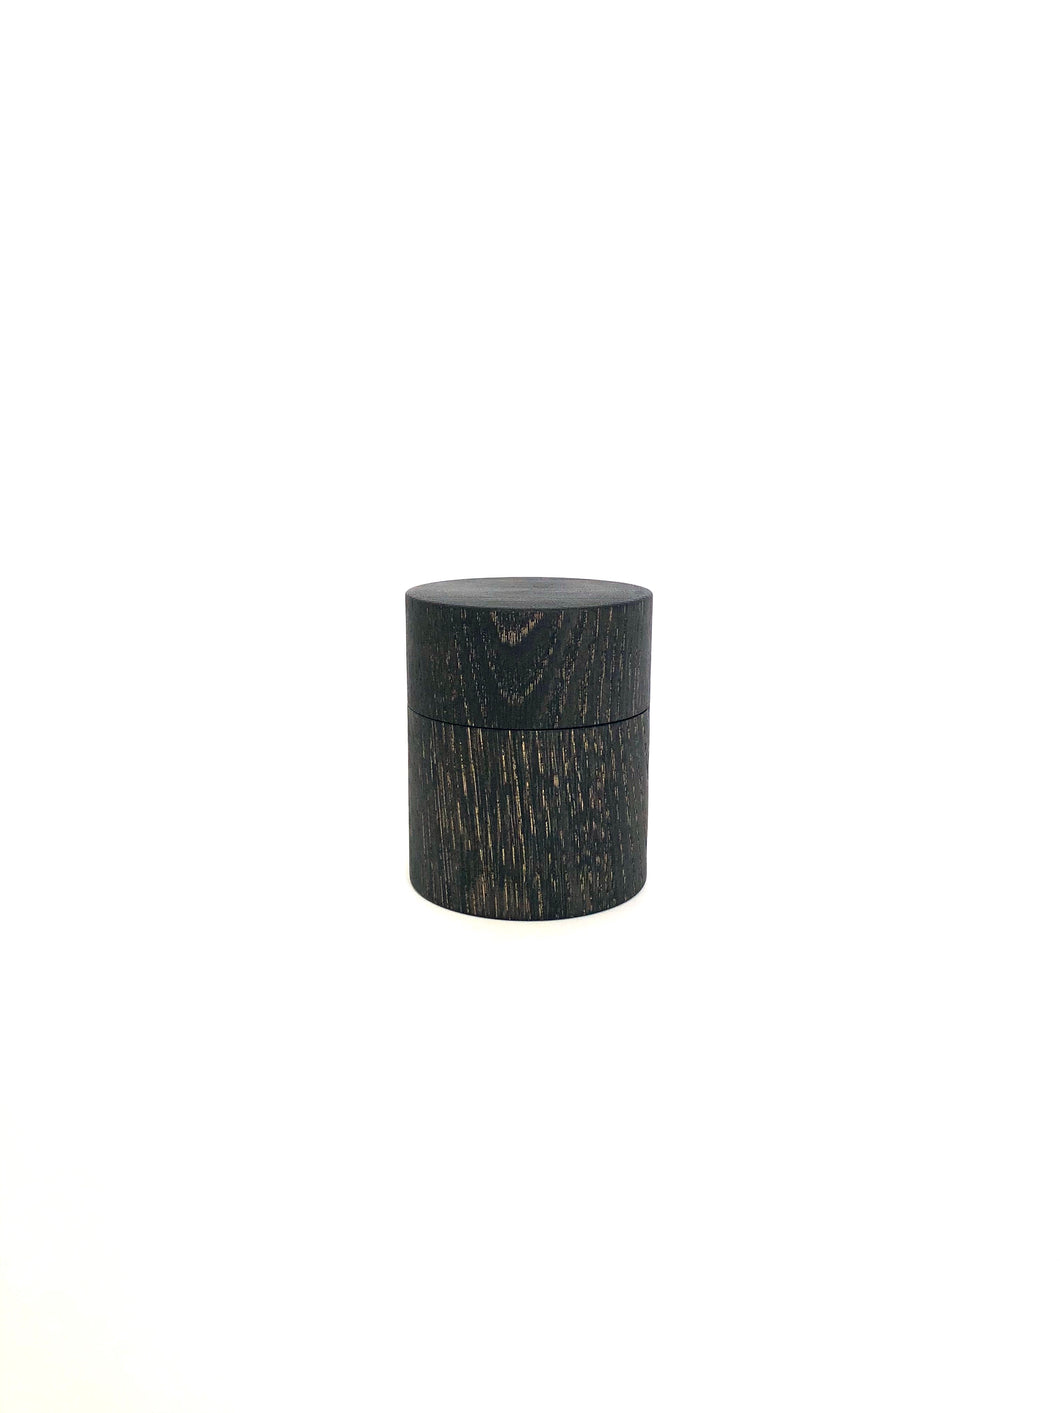 Japanese Handcrafted Wooden Mini Tea Caddy Iron Dyed Chestnut- 栗のミニ茶筒鉄染め 6.5cm